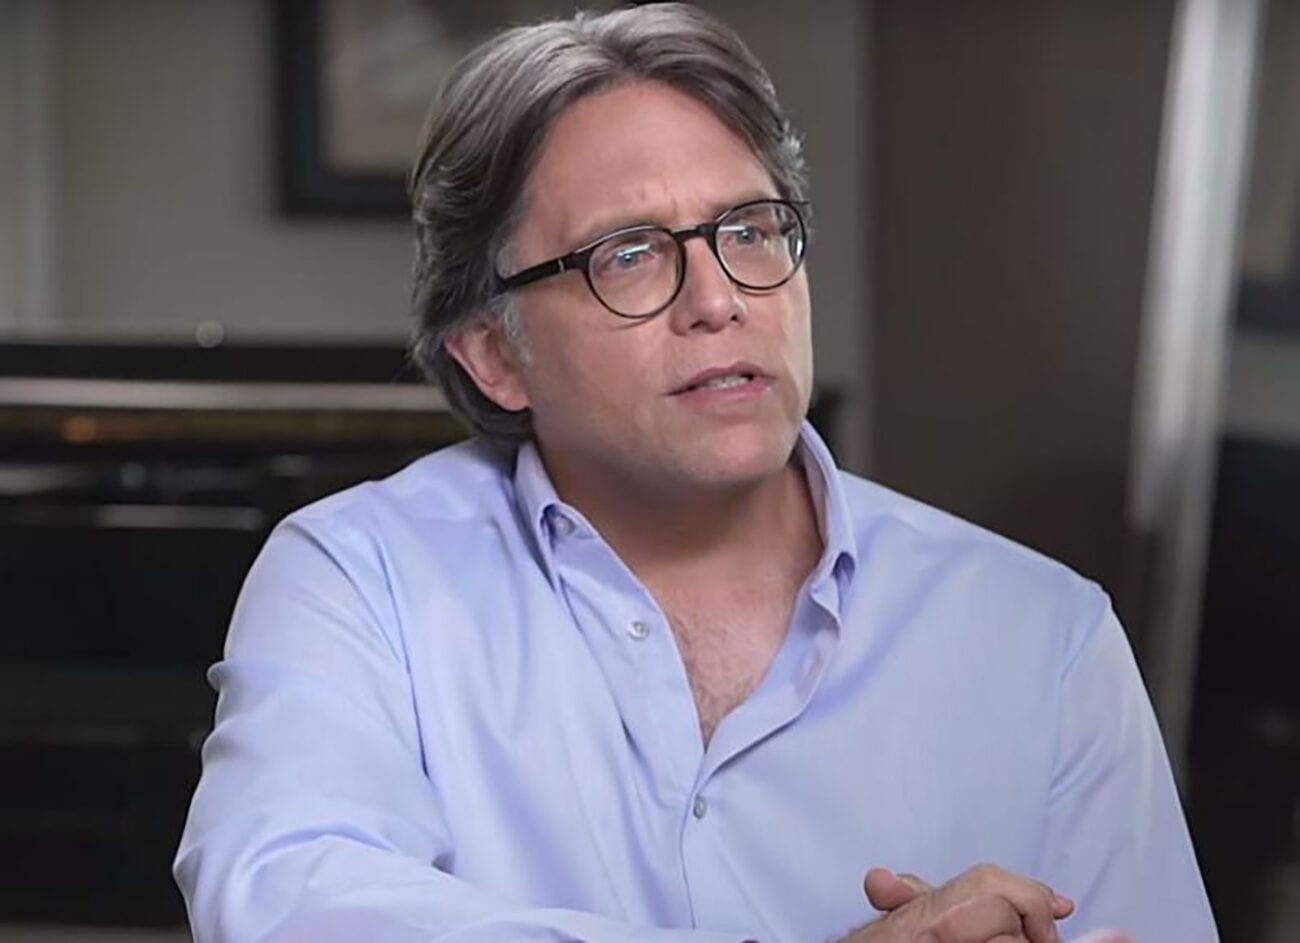 Now that courts are reopening, the leaders of the NXIVM cult are finally about the meet their fate. Find out how long everyone's going to jail for.